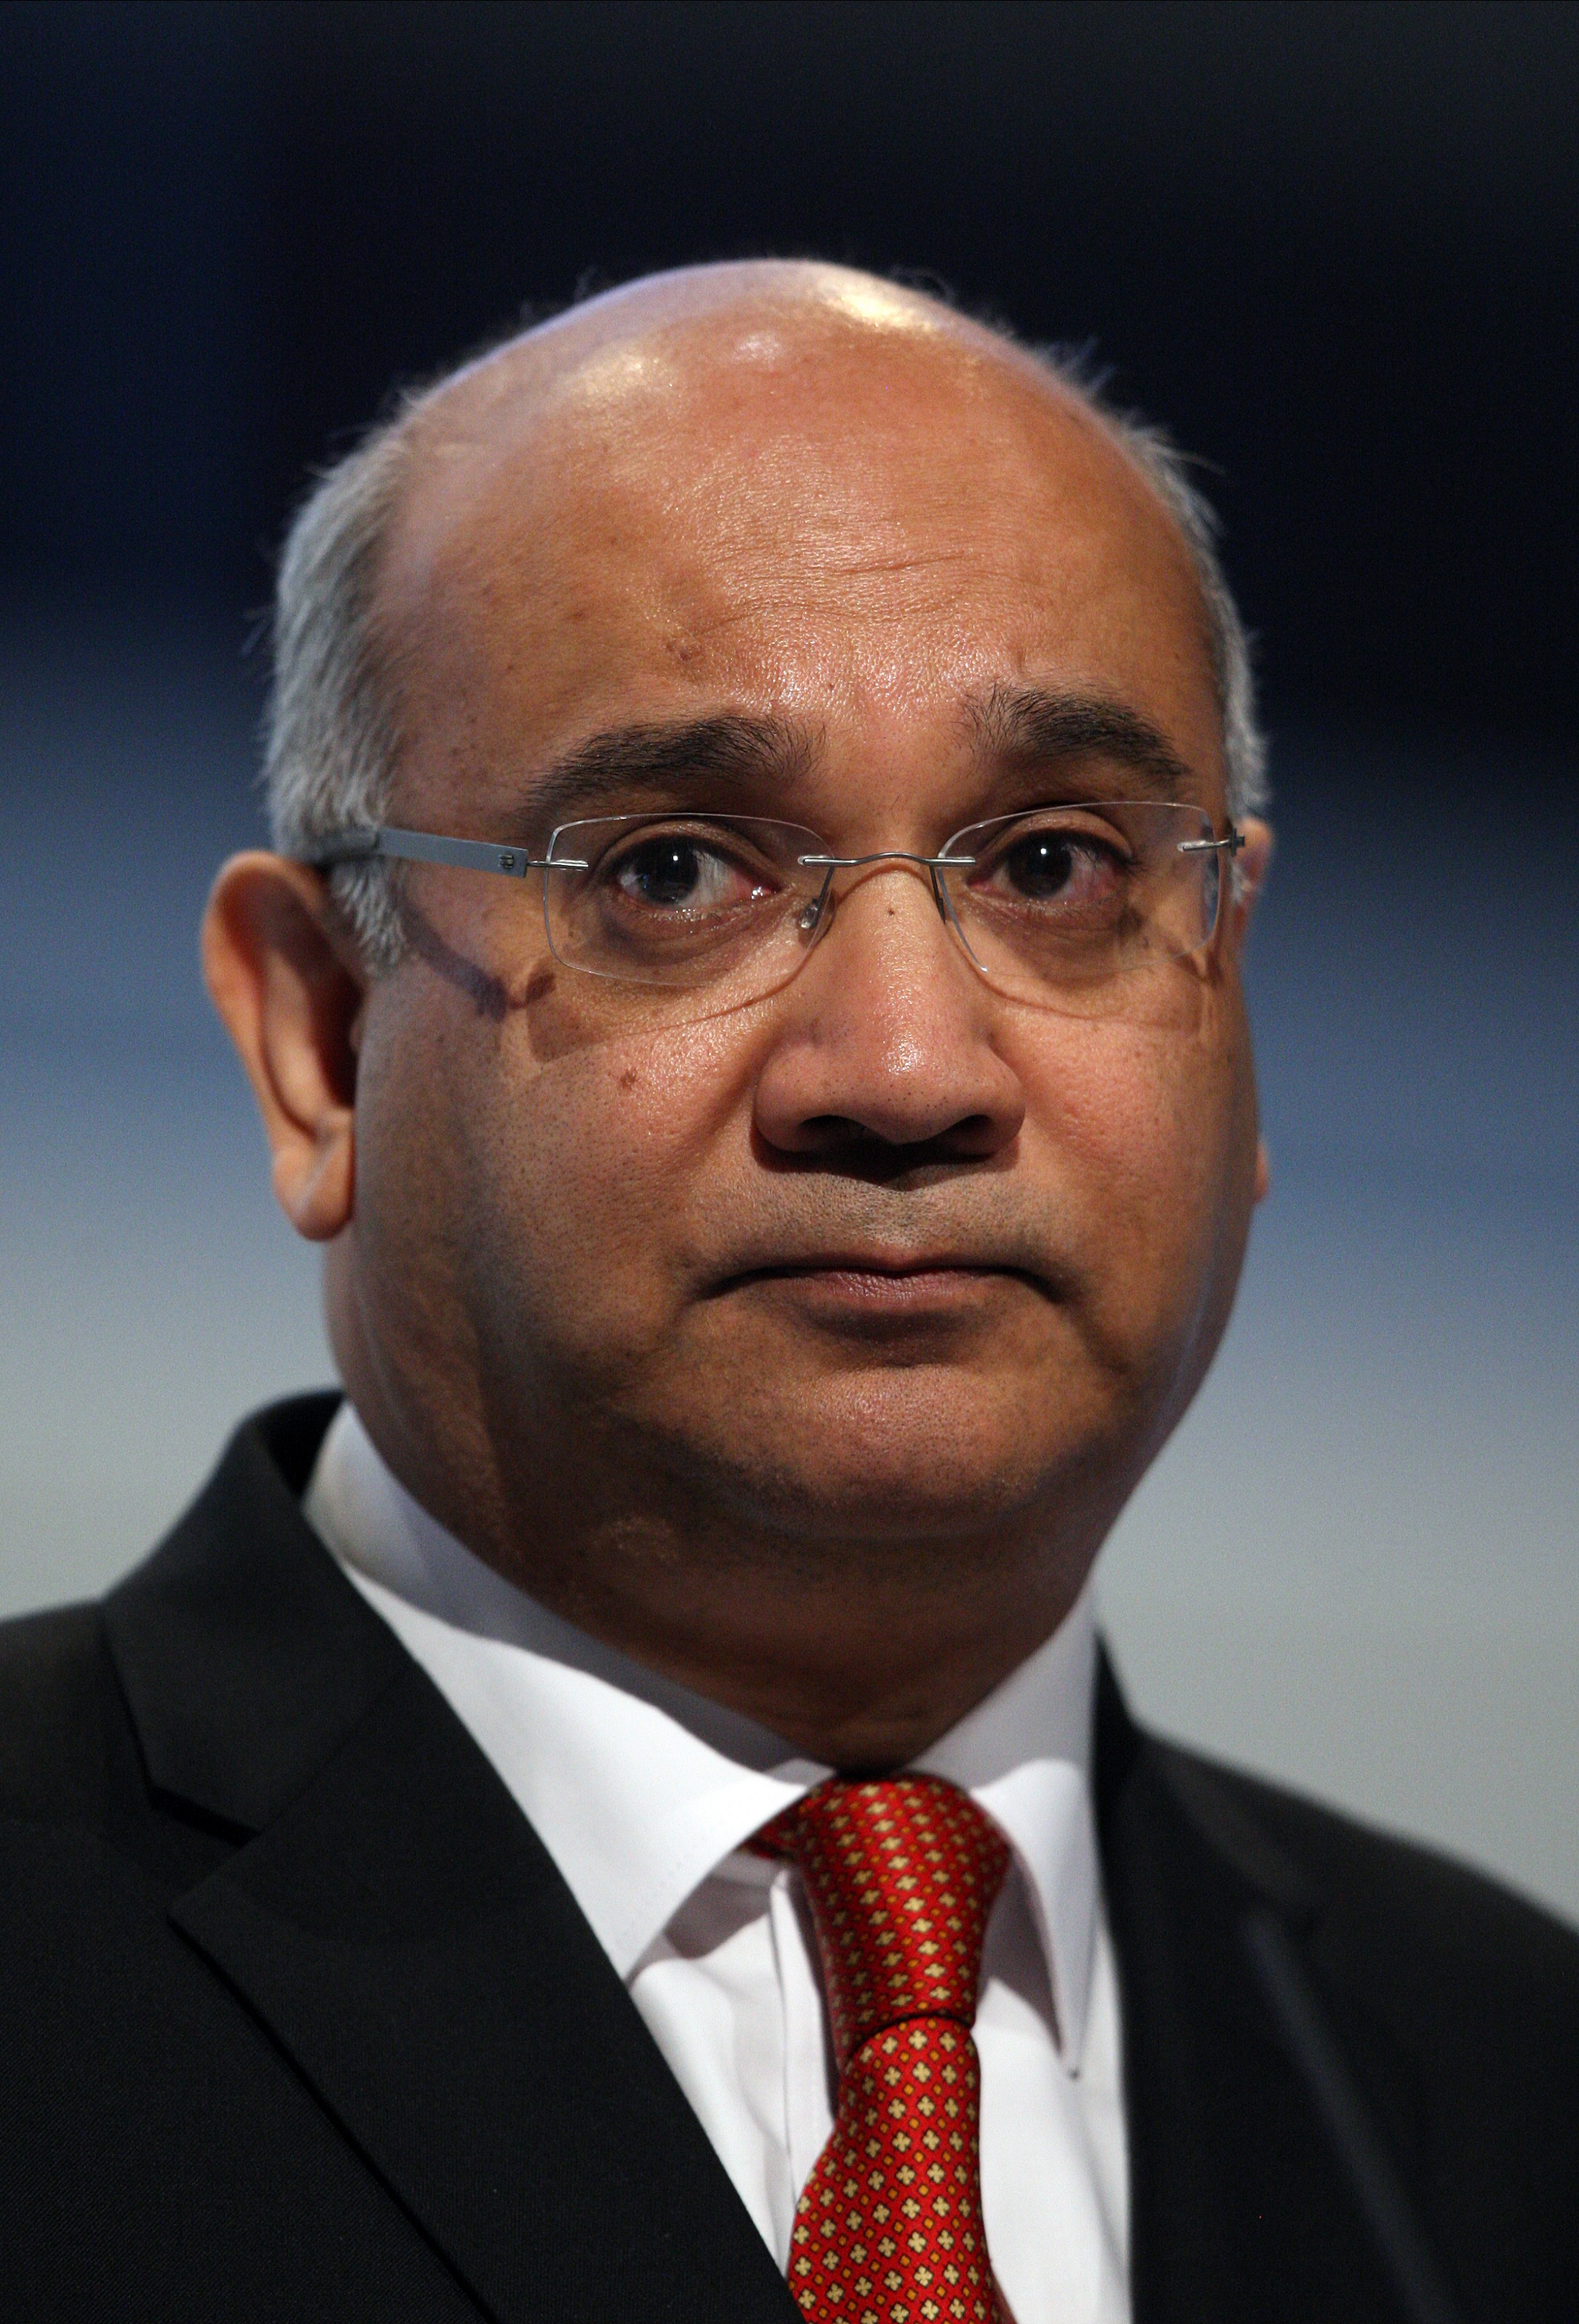 Keith Vaz MP